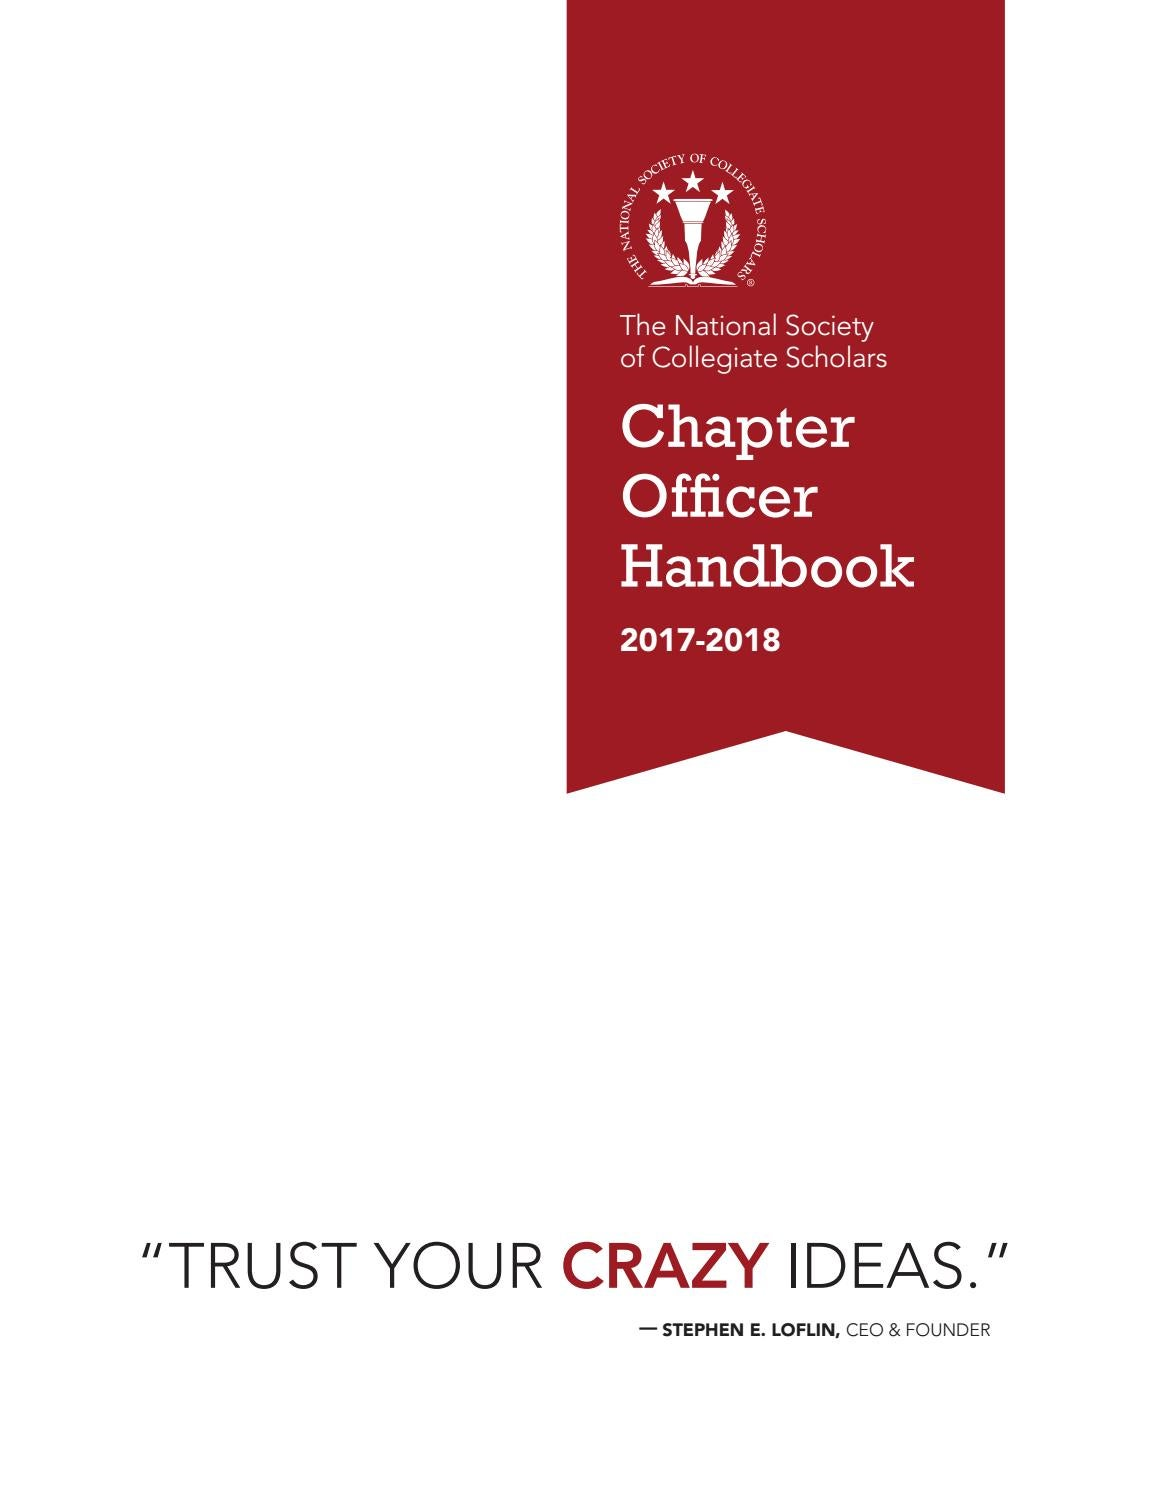 nscs officer handbook 2017 2018 by the national society of collegiate scholars issuu - Xecutive Resume Examples